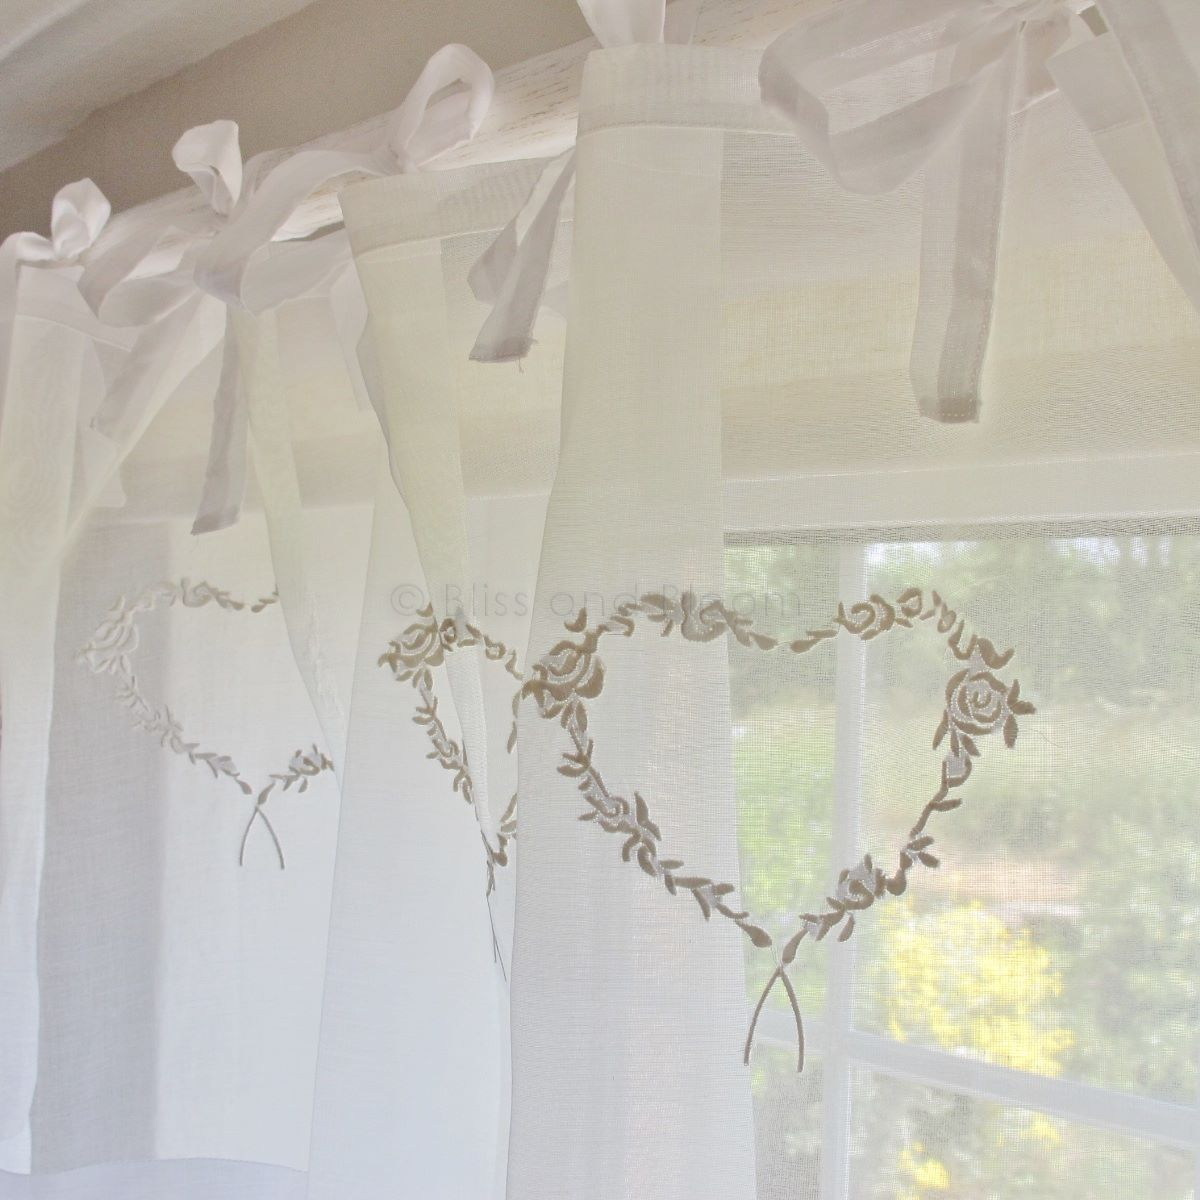 White heart voile tie curtain x 1 | Bliss and Bloom Ltd for Grey And White Voile Curtains  53kxo